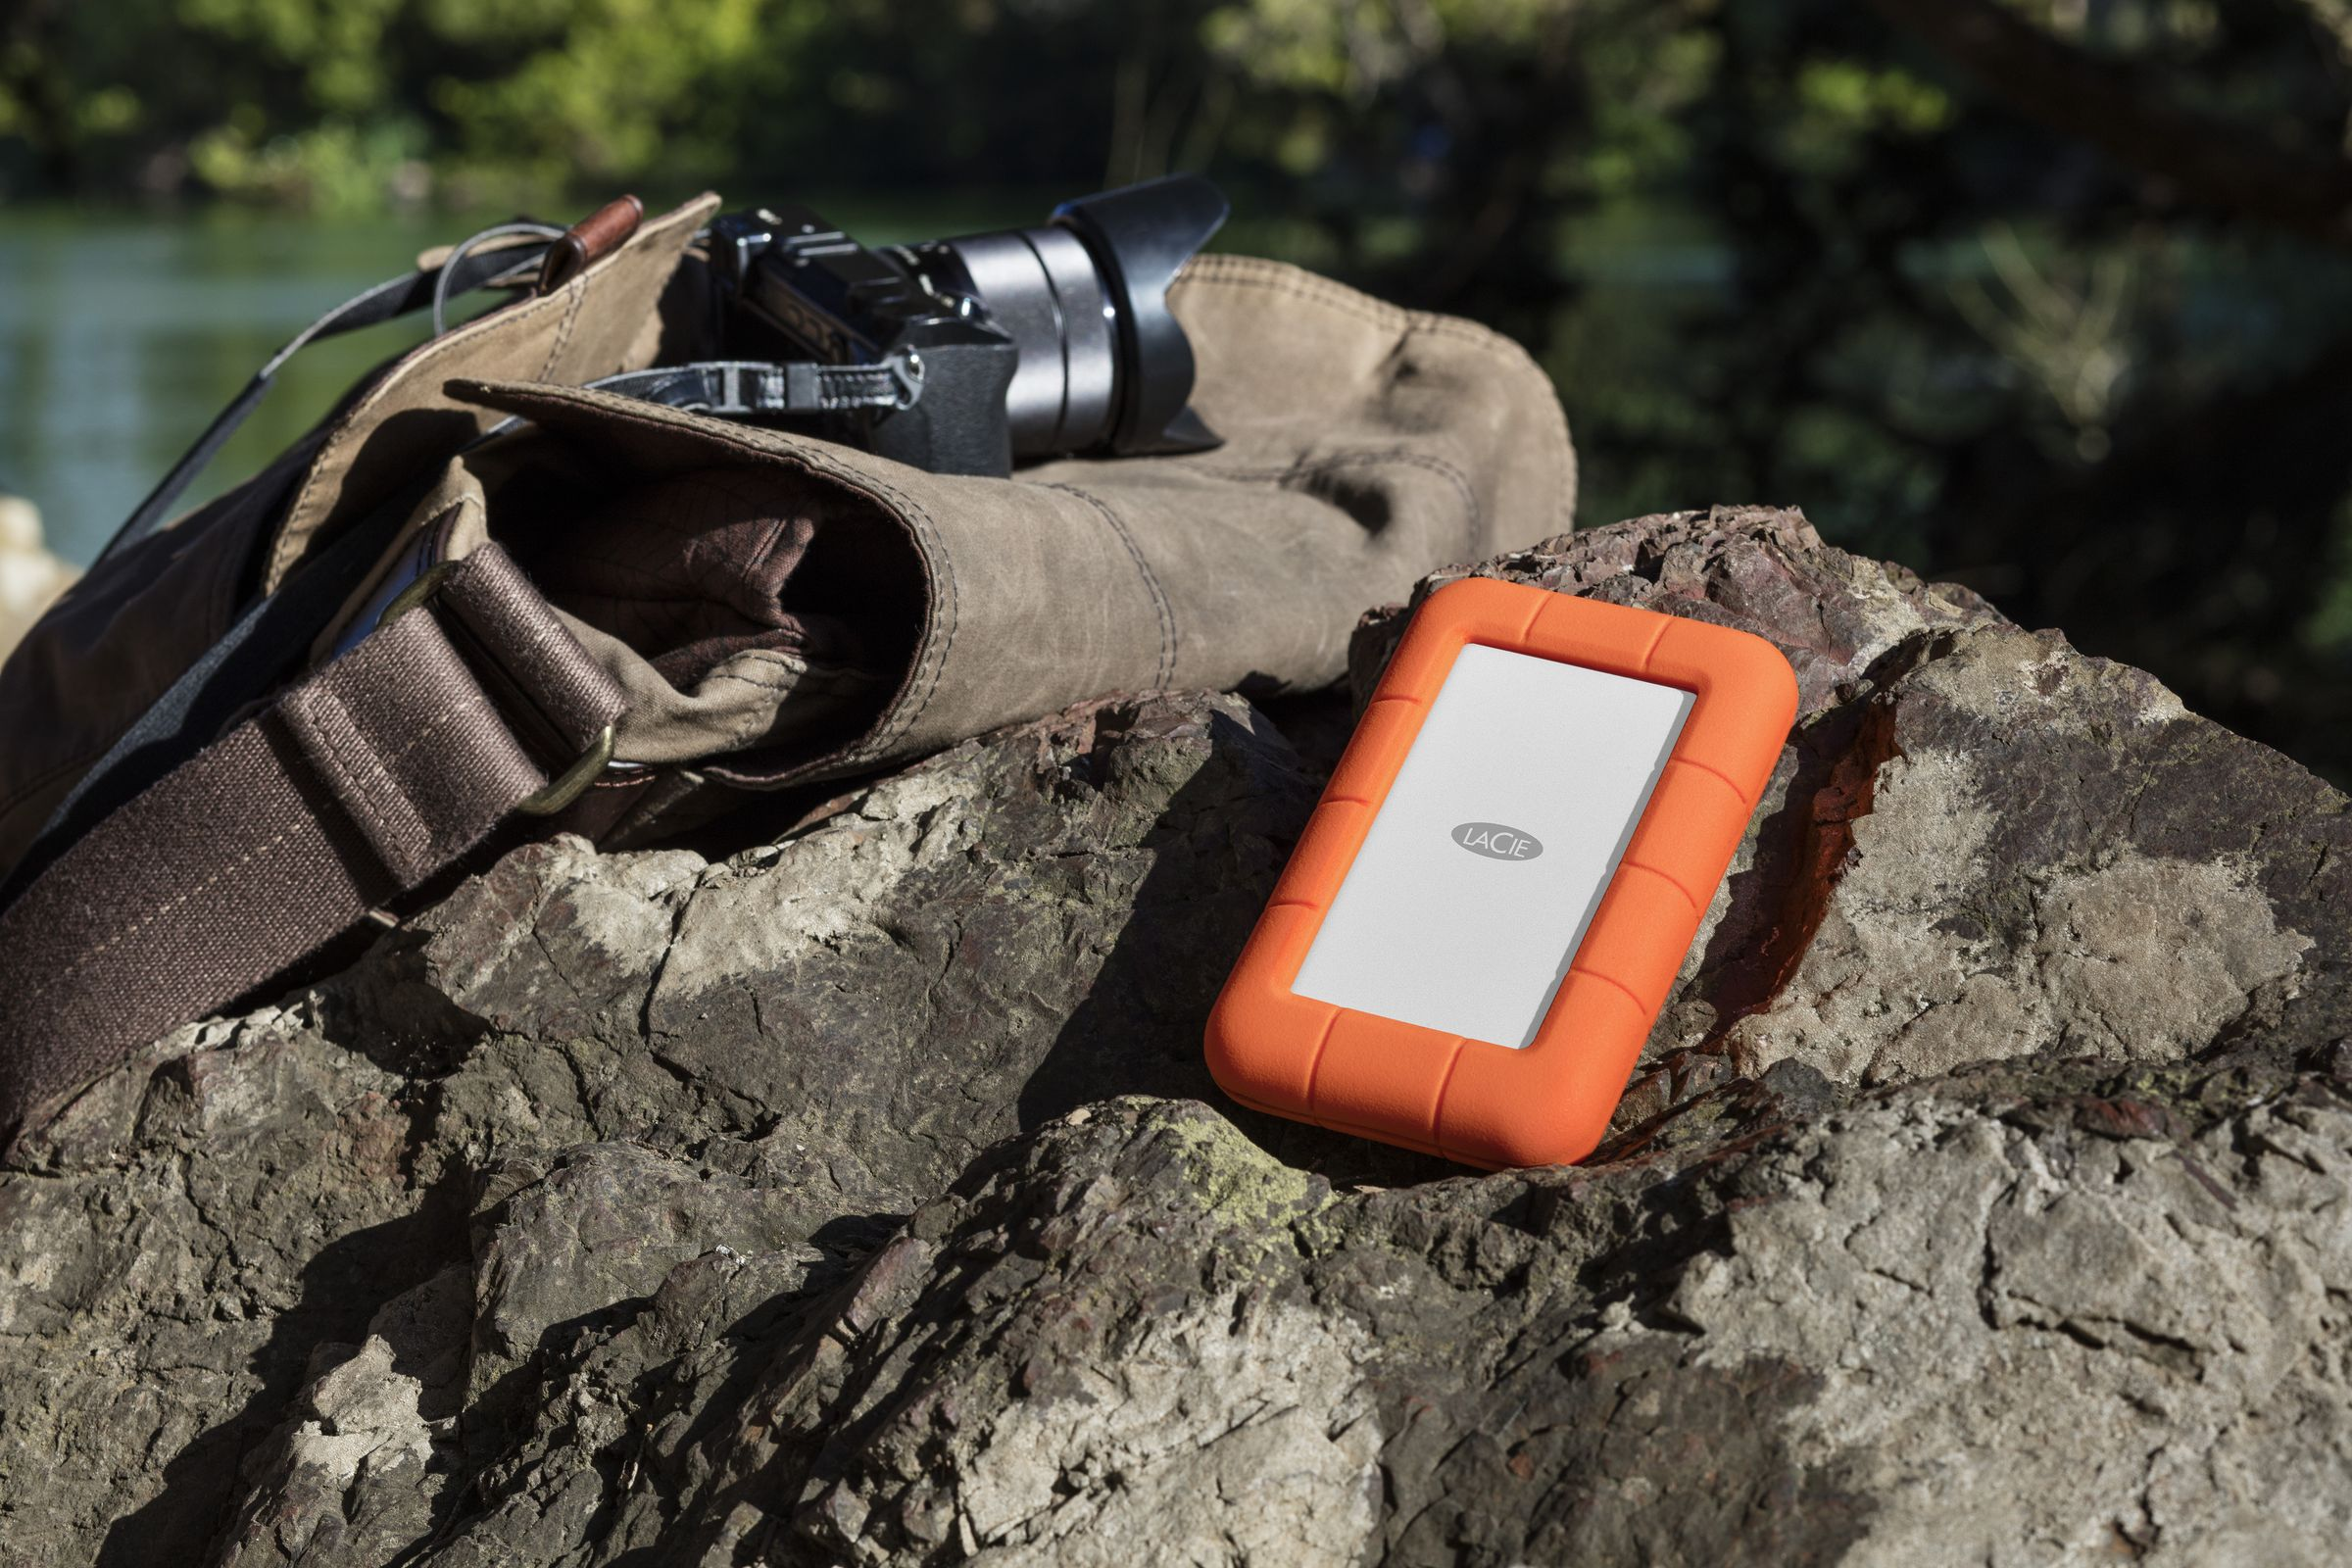 LaCie Rugged Secure All-Terrain Encrypted Storage 2TB - additional image 3